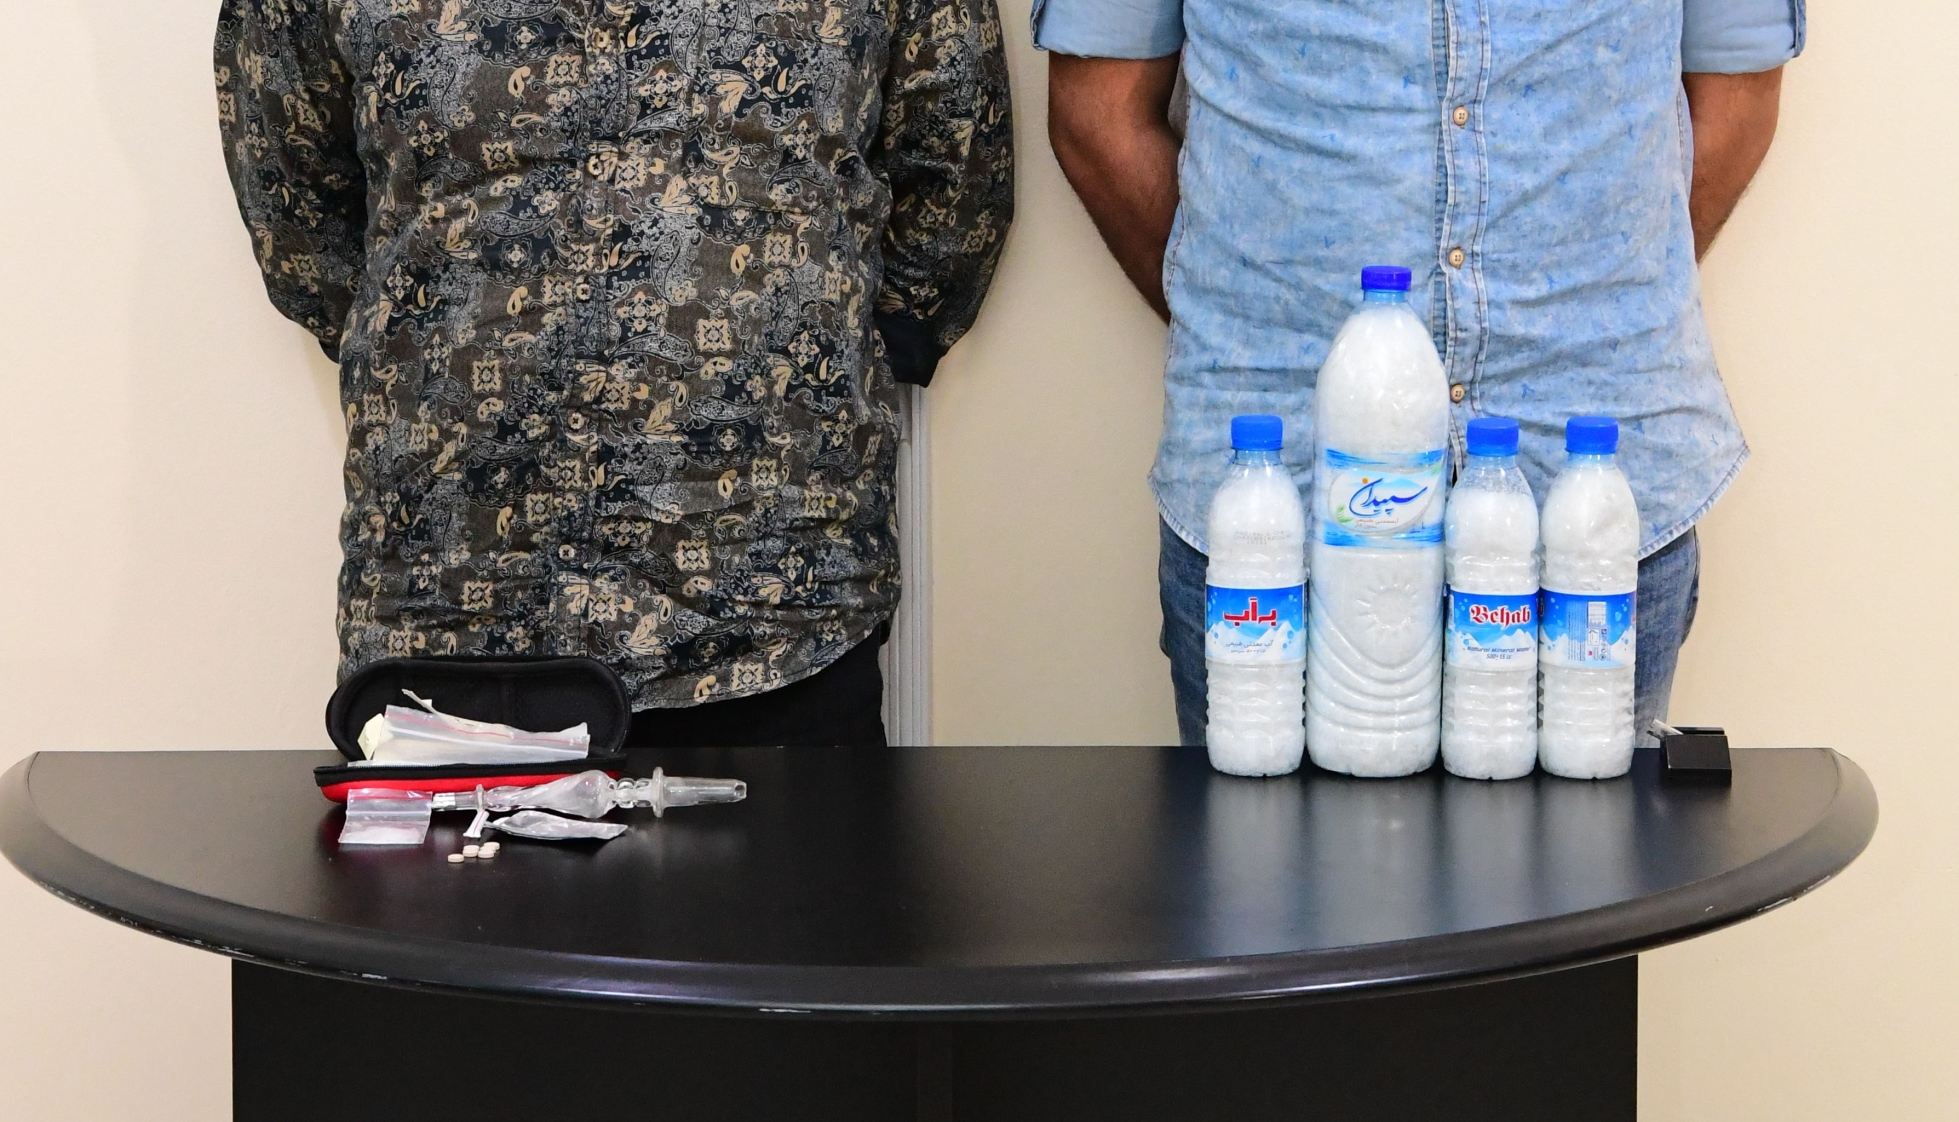 The 2 suspected drug dealers with some of the banned narcotics found in their possession